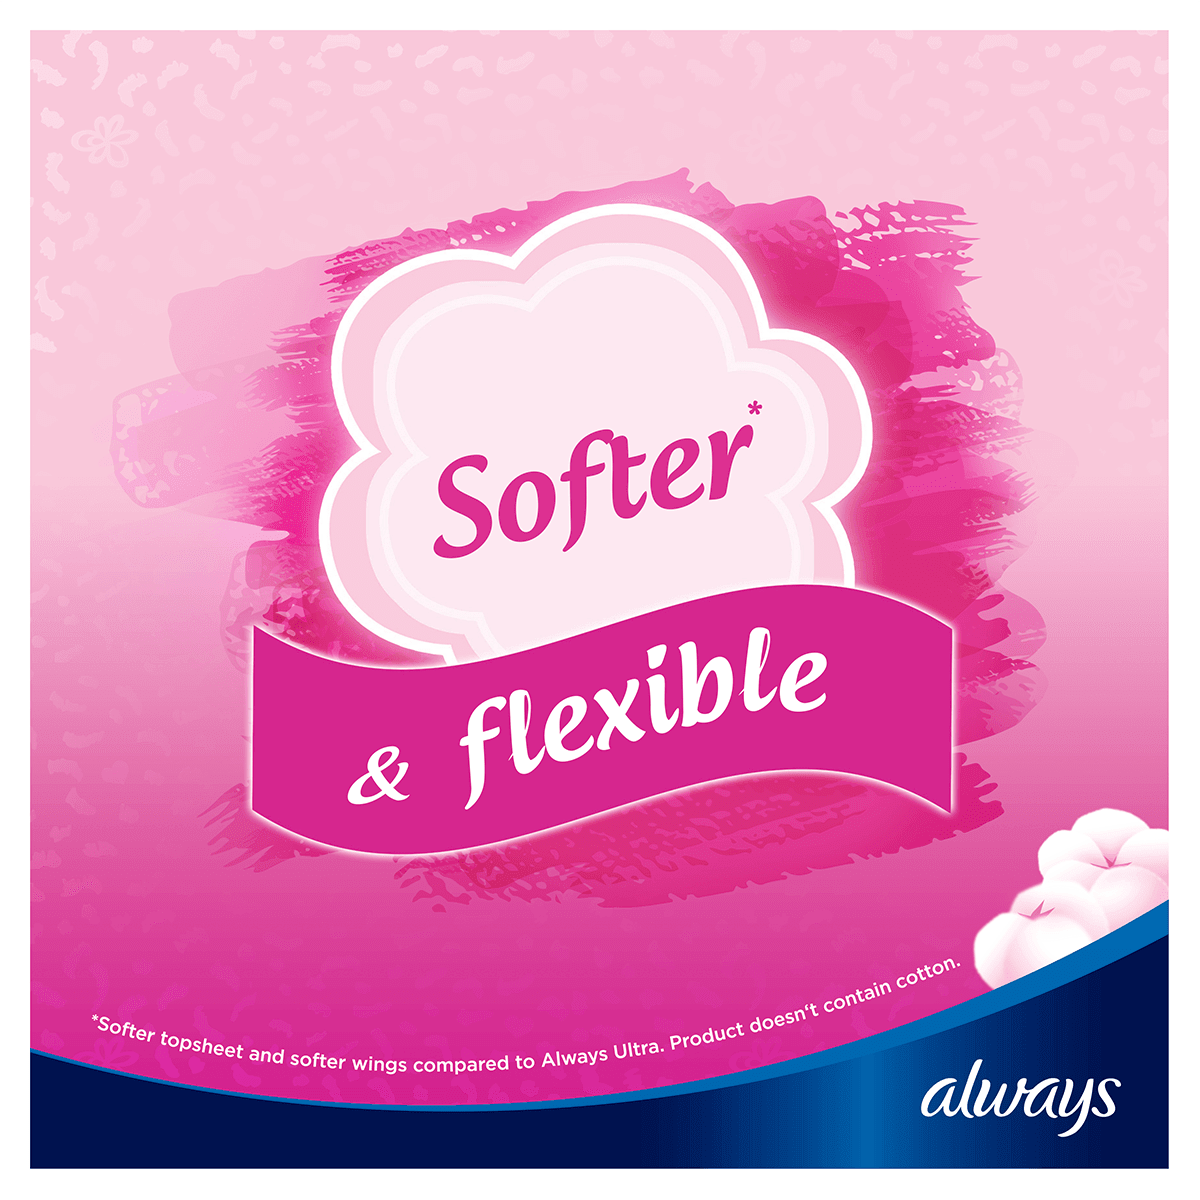 Softer & flexible